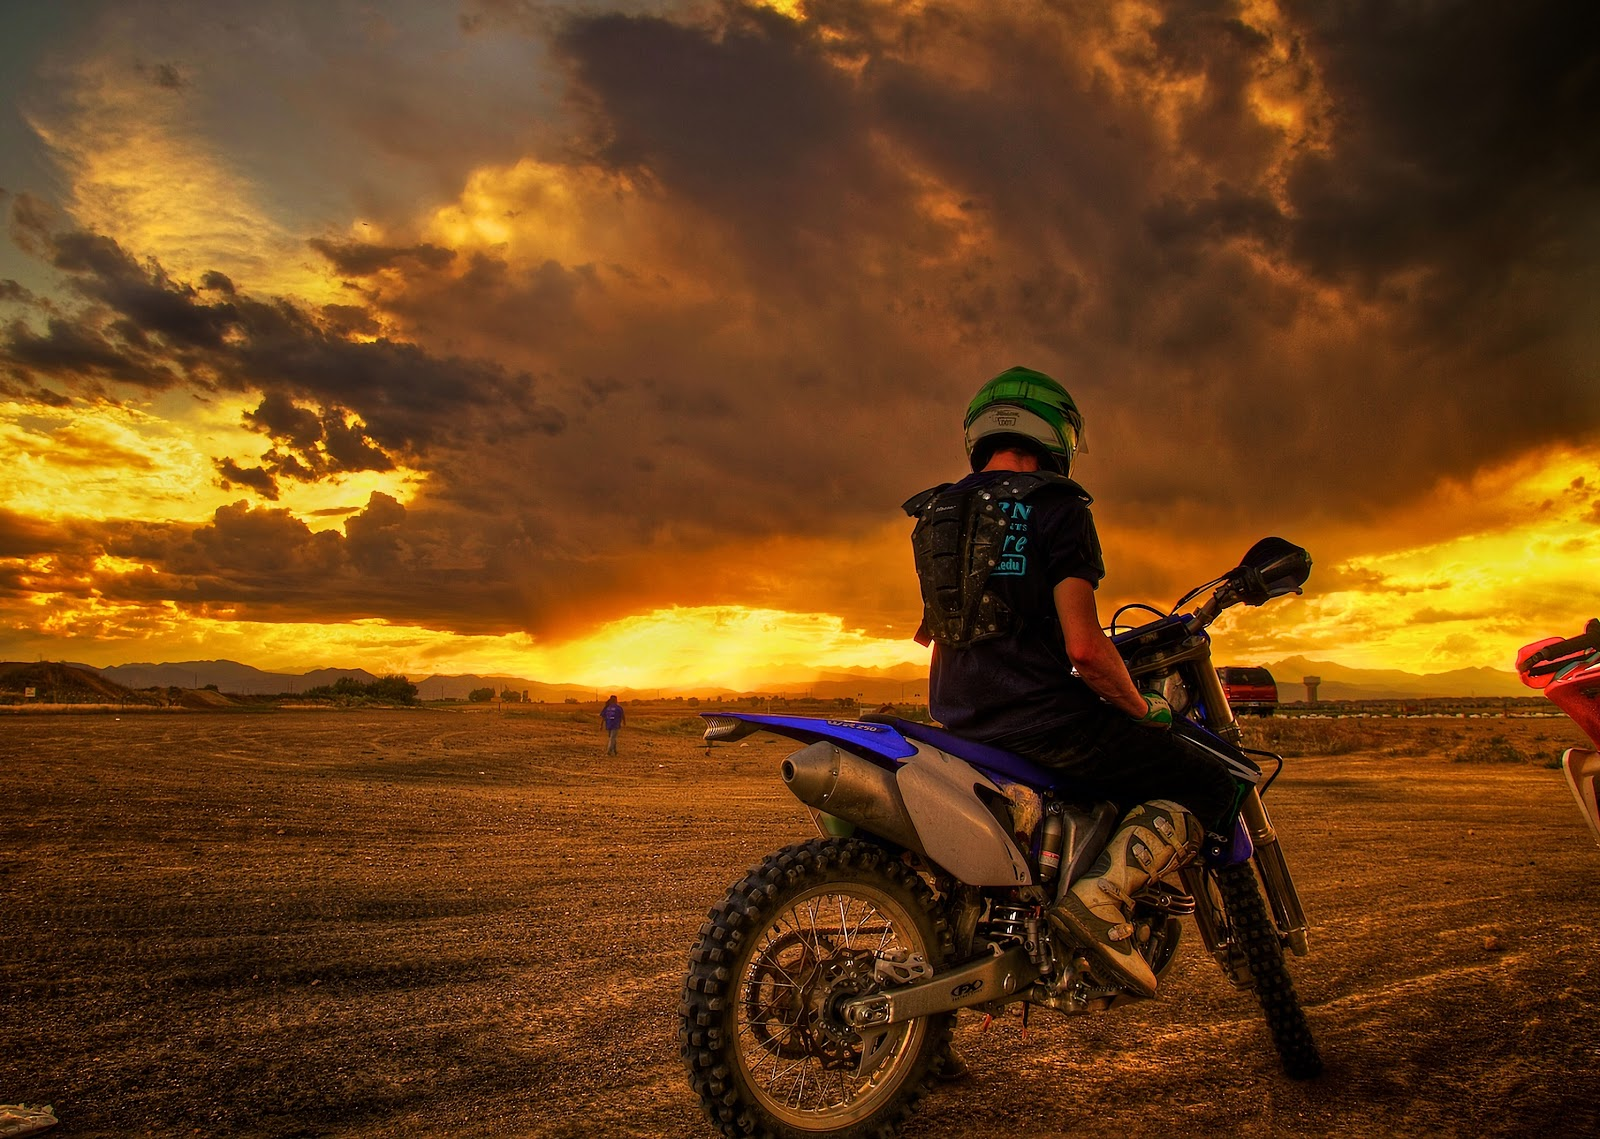 motorcyclist, motorcycle, sunset wallpaper, background